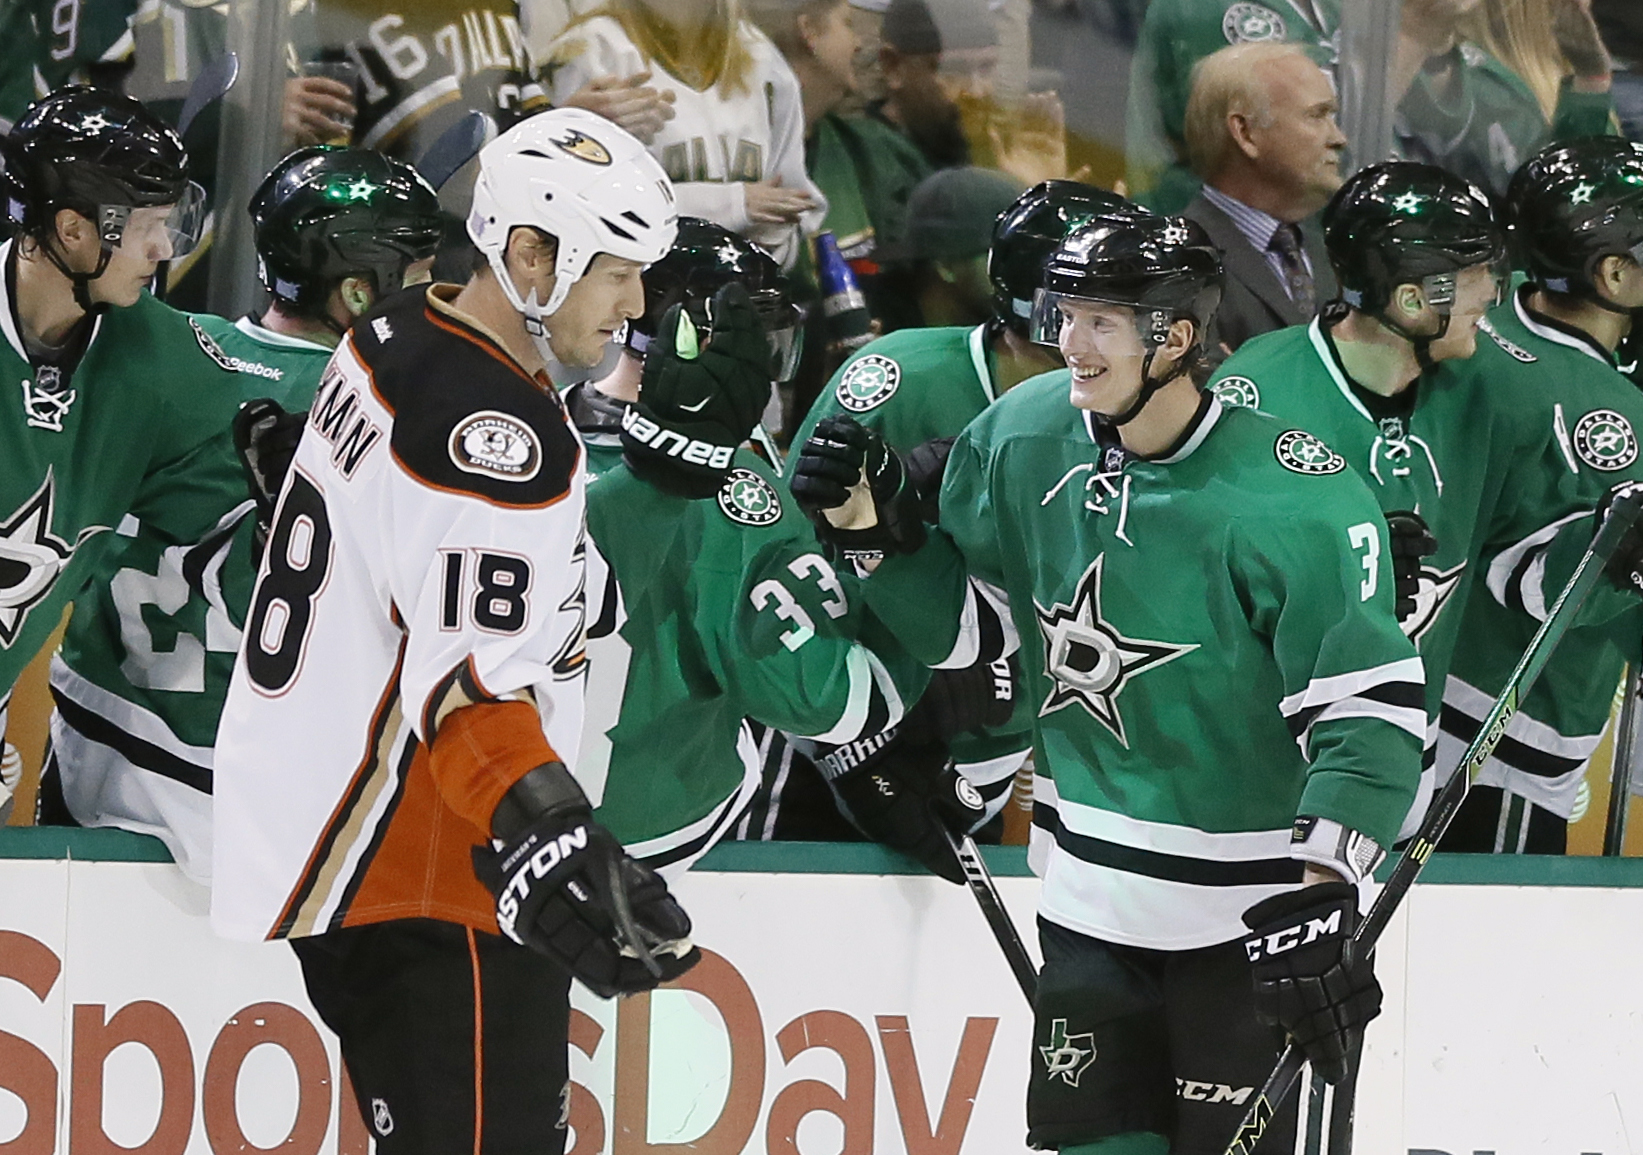 Anaheim Ducks' Tim Jackman (18) skates past Dallas Stars' John Klingberg (3), of Sweden, as Klingberg is congratulated by the bench on his goal against the Ducks in the second period of an NHL hockey game Tuesday, Oct. 27, 2015, in Dallas. (AP Photo/Tony